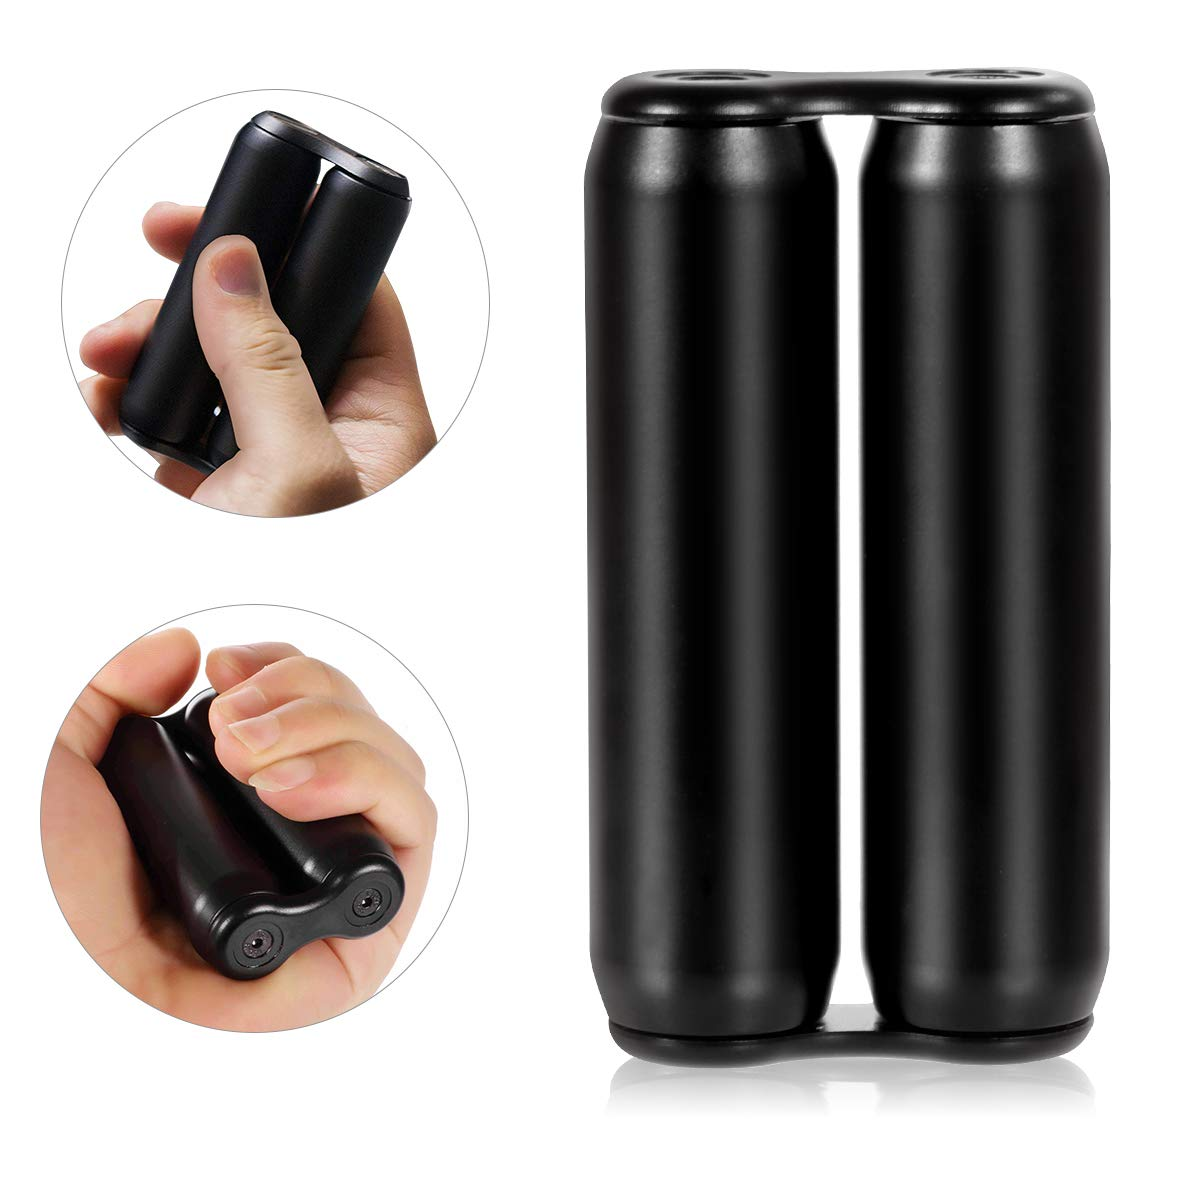 MuD-A Anti-Anxiety Toys,Handheld Fidget Toy for Adults,Relieving Stress Boredom ADHD Autism,Easy to Carry and Use (Black) by MuD-A (Image #1)